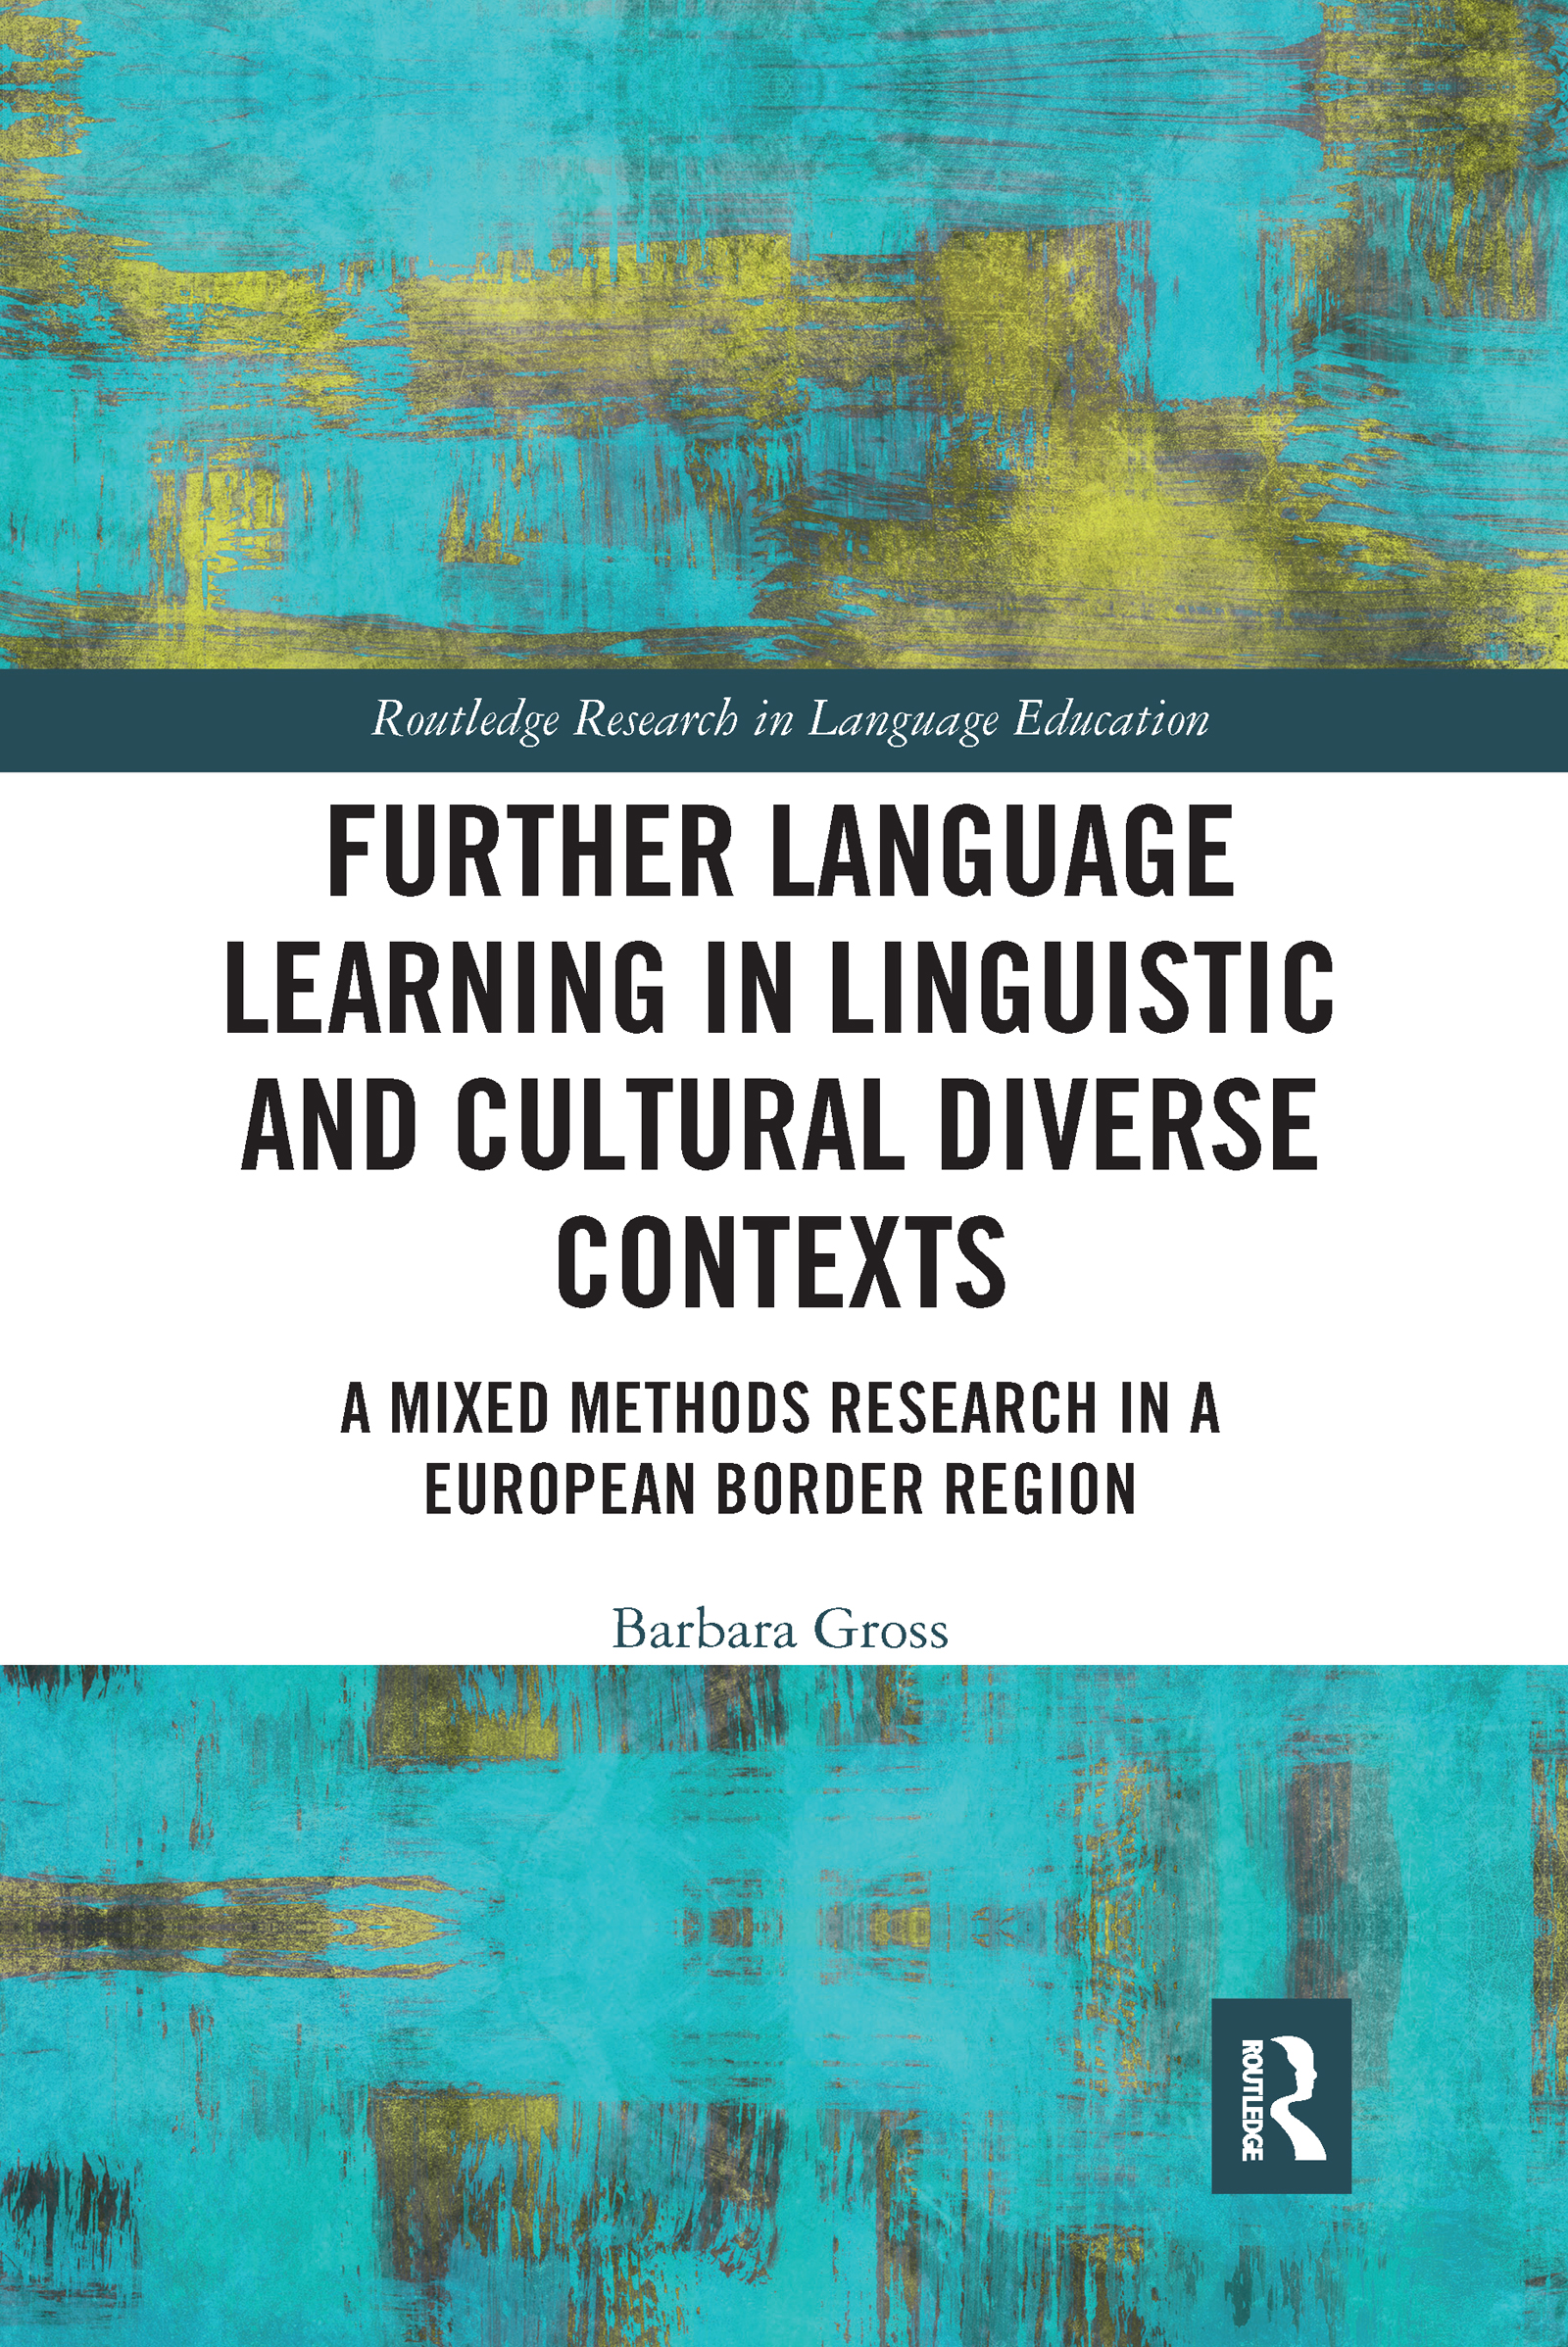 Further Language Learning in Linguistic and Cultural Diverse Contexts